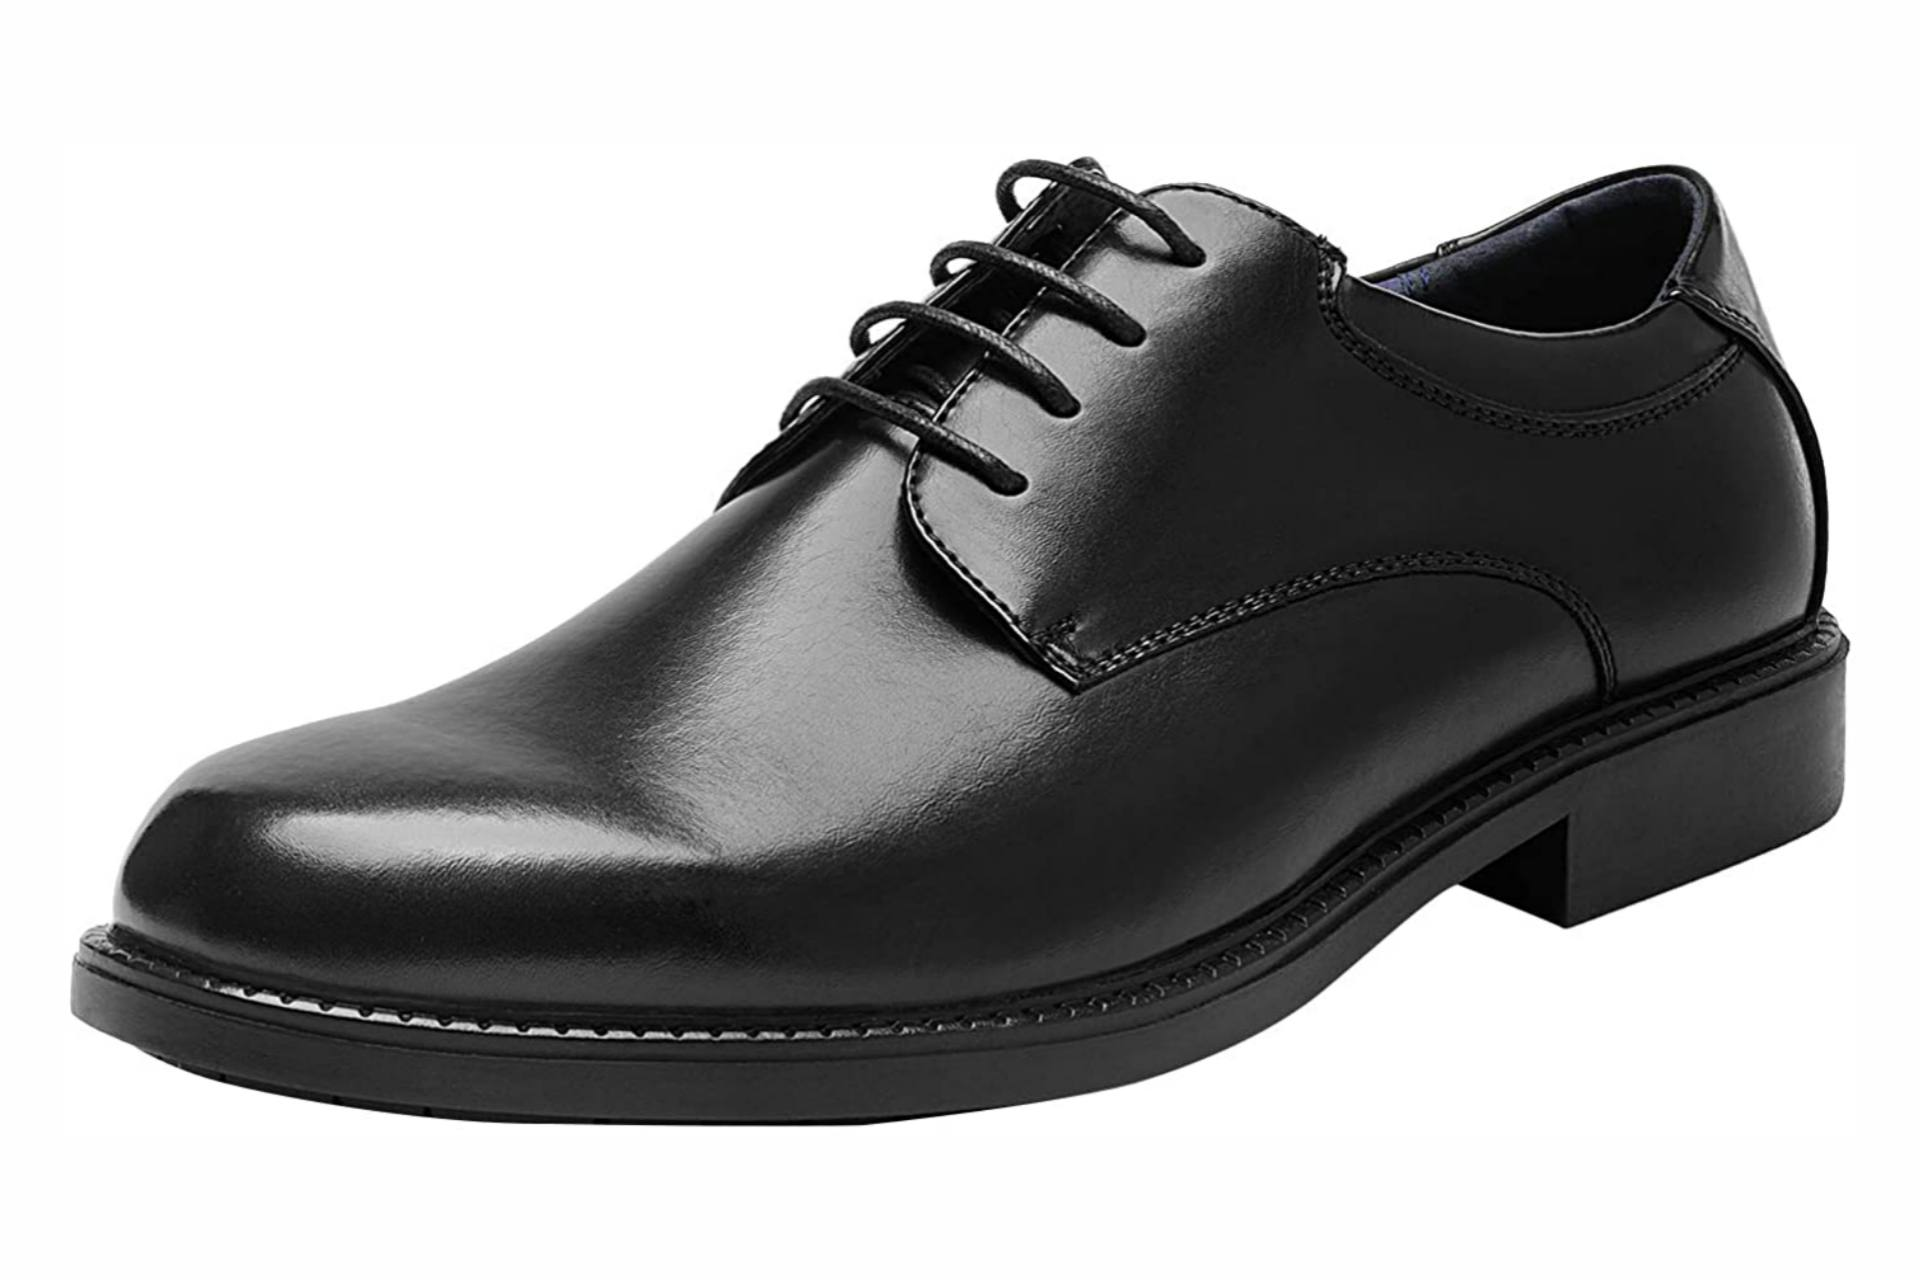 Quality dress shoes under 50 dollars